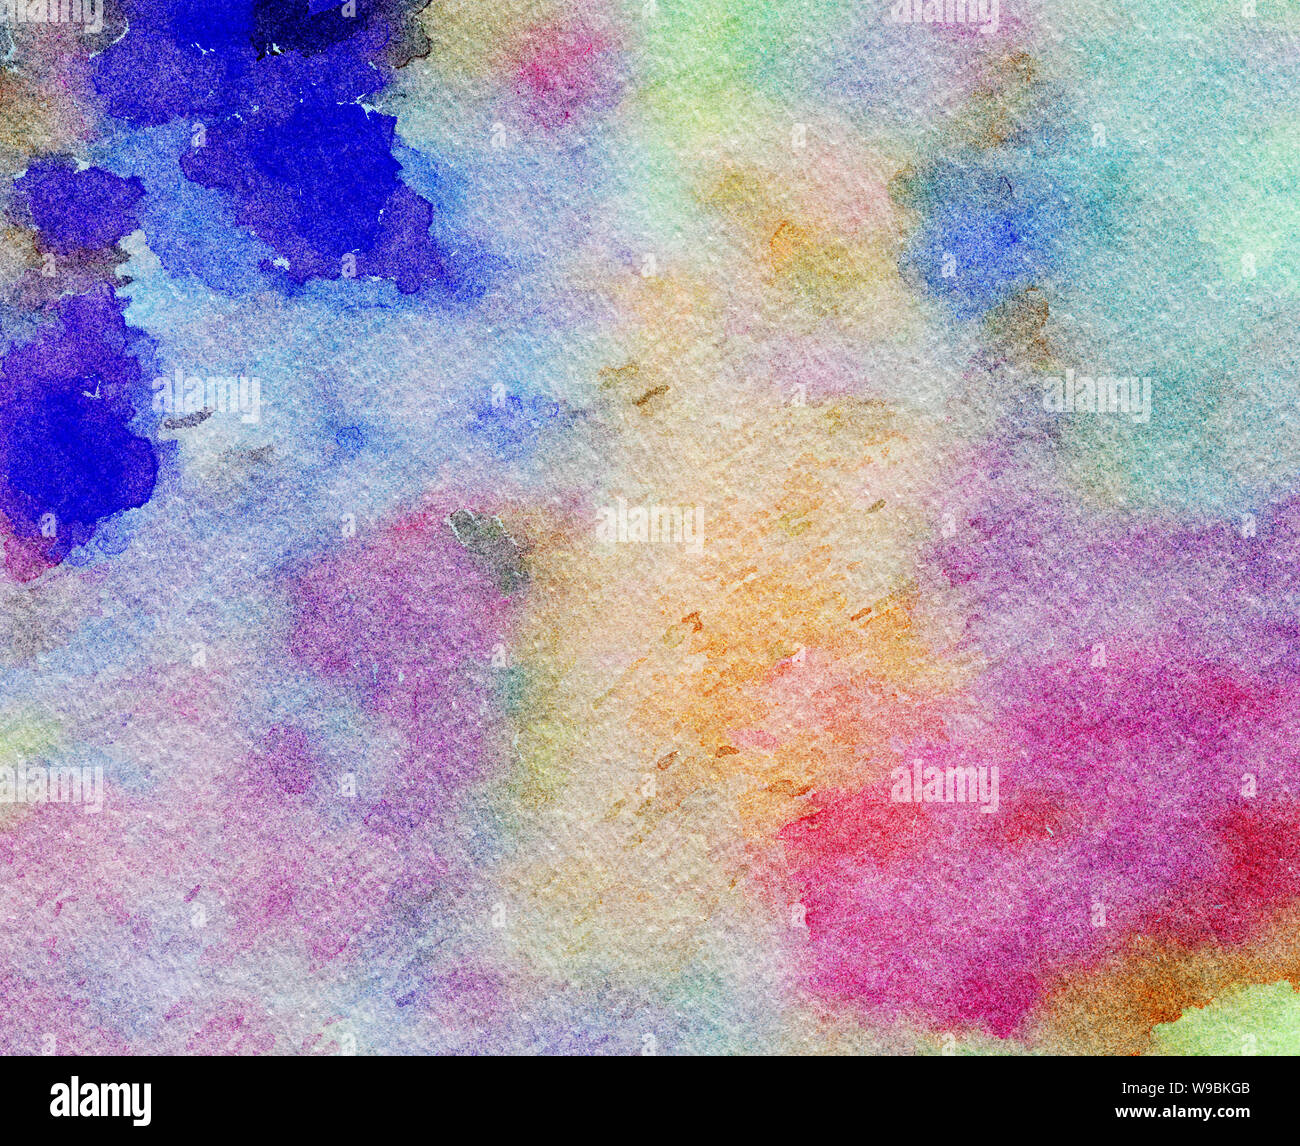 Watercolor Texture Background Abstract Painting Paint Splashes Pattern Design Template For Flyer Banner Cards And Invitation Stock Photo Alamy